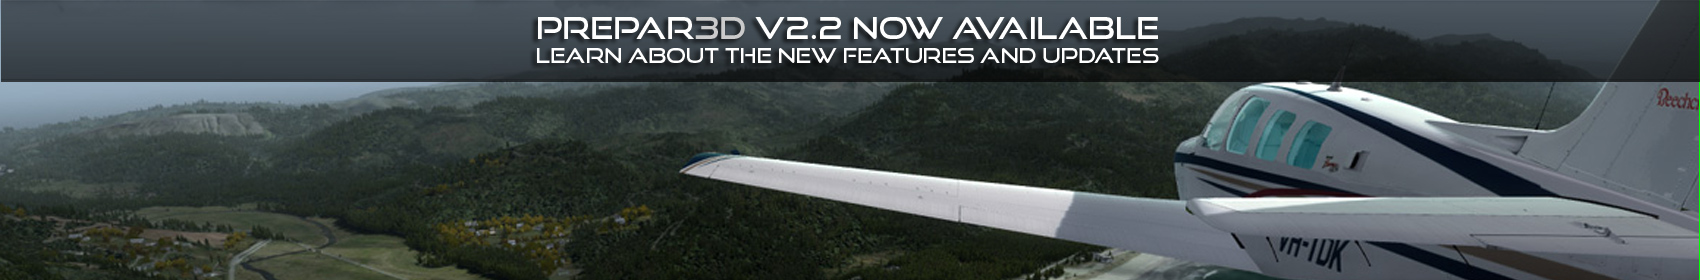 Prepar3D v2.2 Now Available